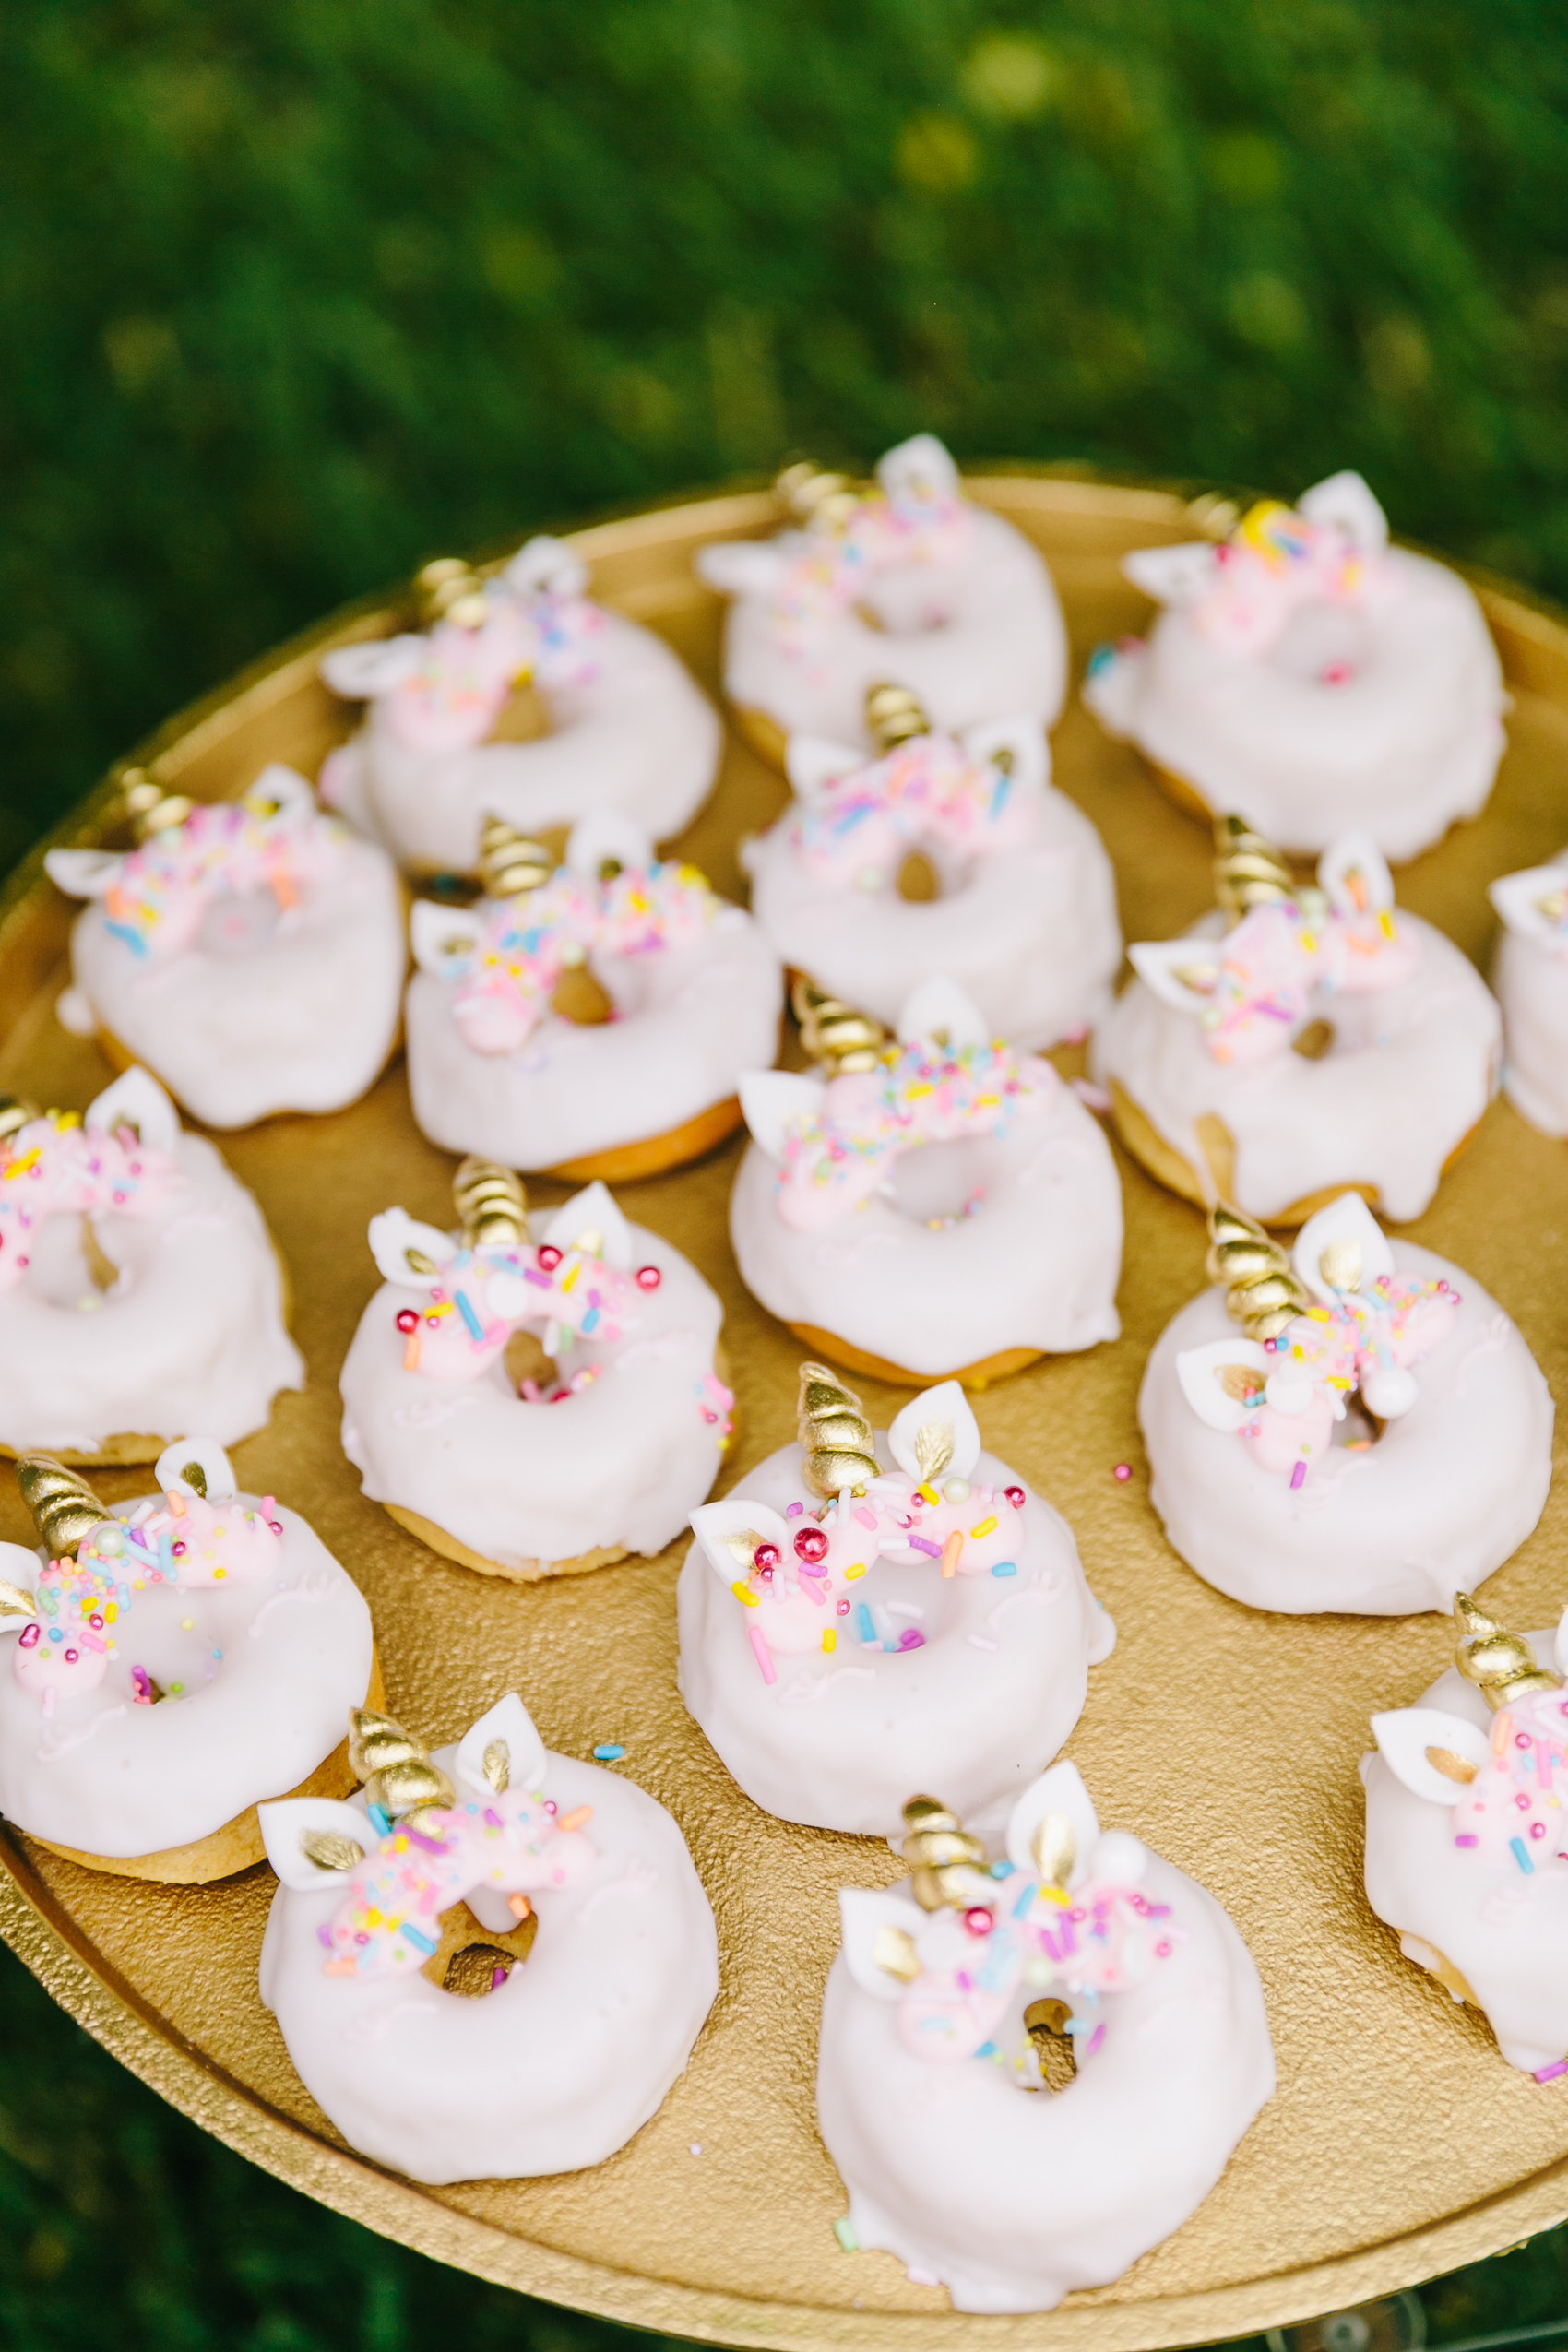 Los_Angeles_Family_Photographer_Luxury_Childrens_Party_Beverly_Hills_Unicorn_Birthday_Party-0090.jpg